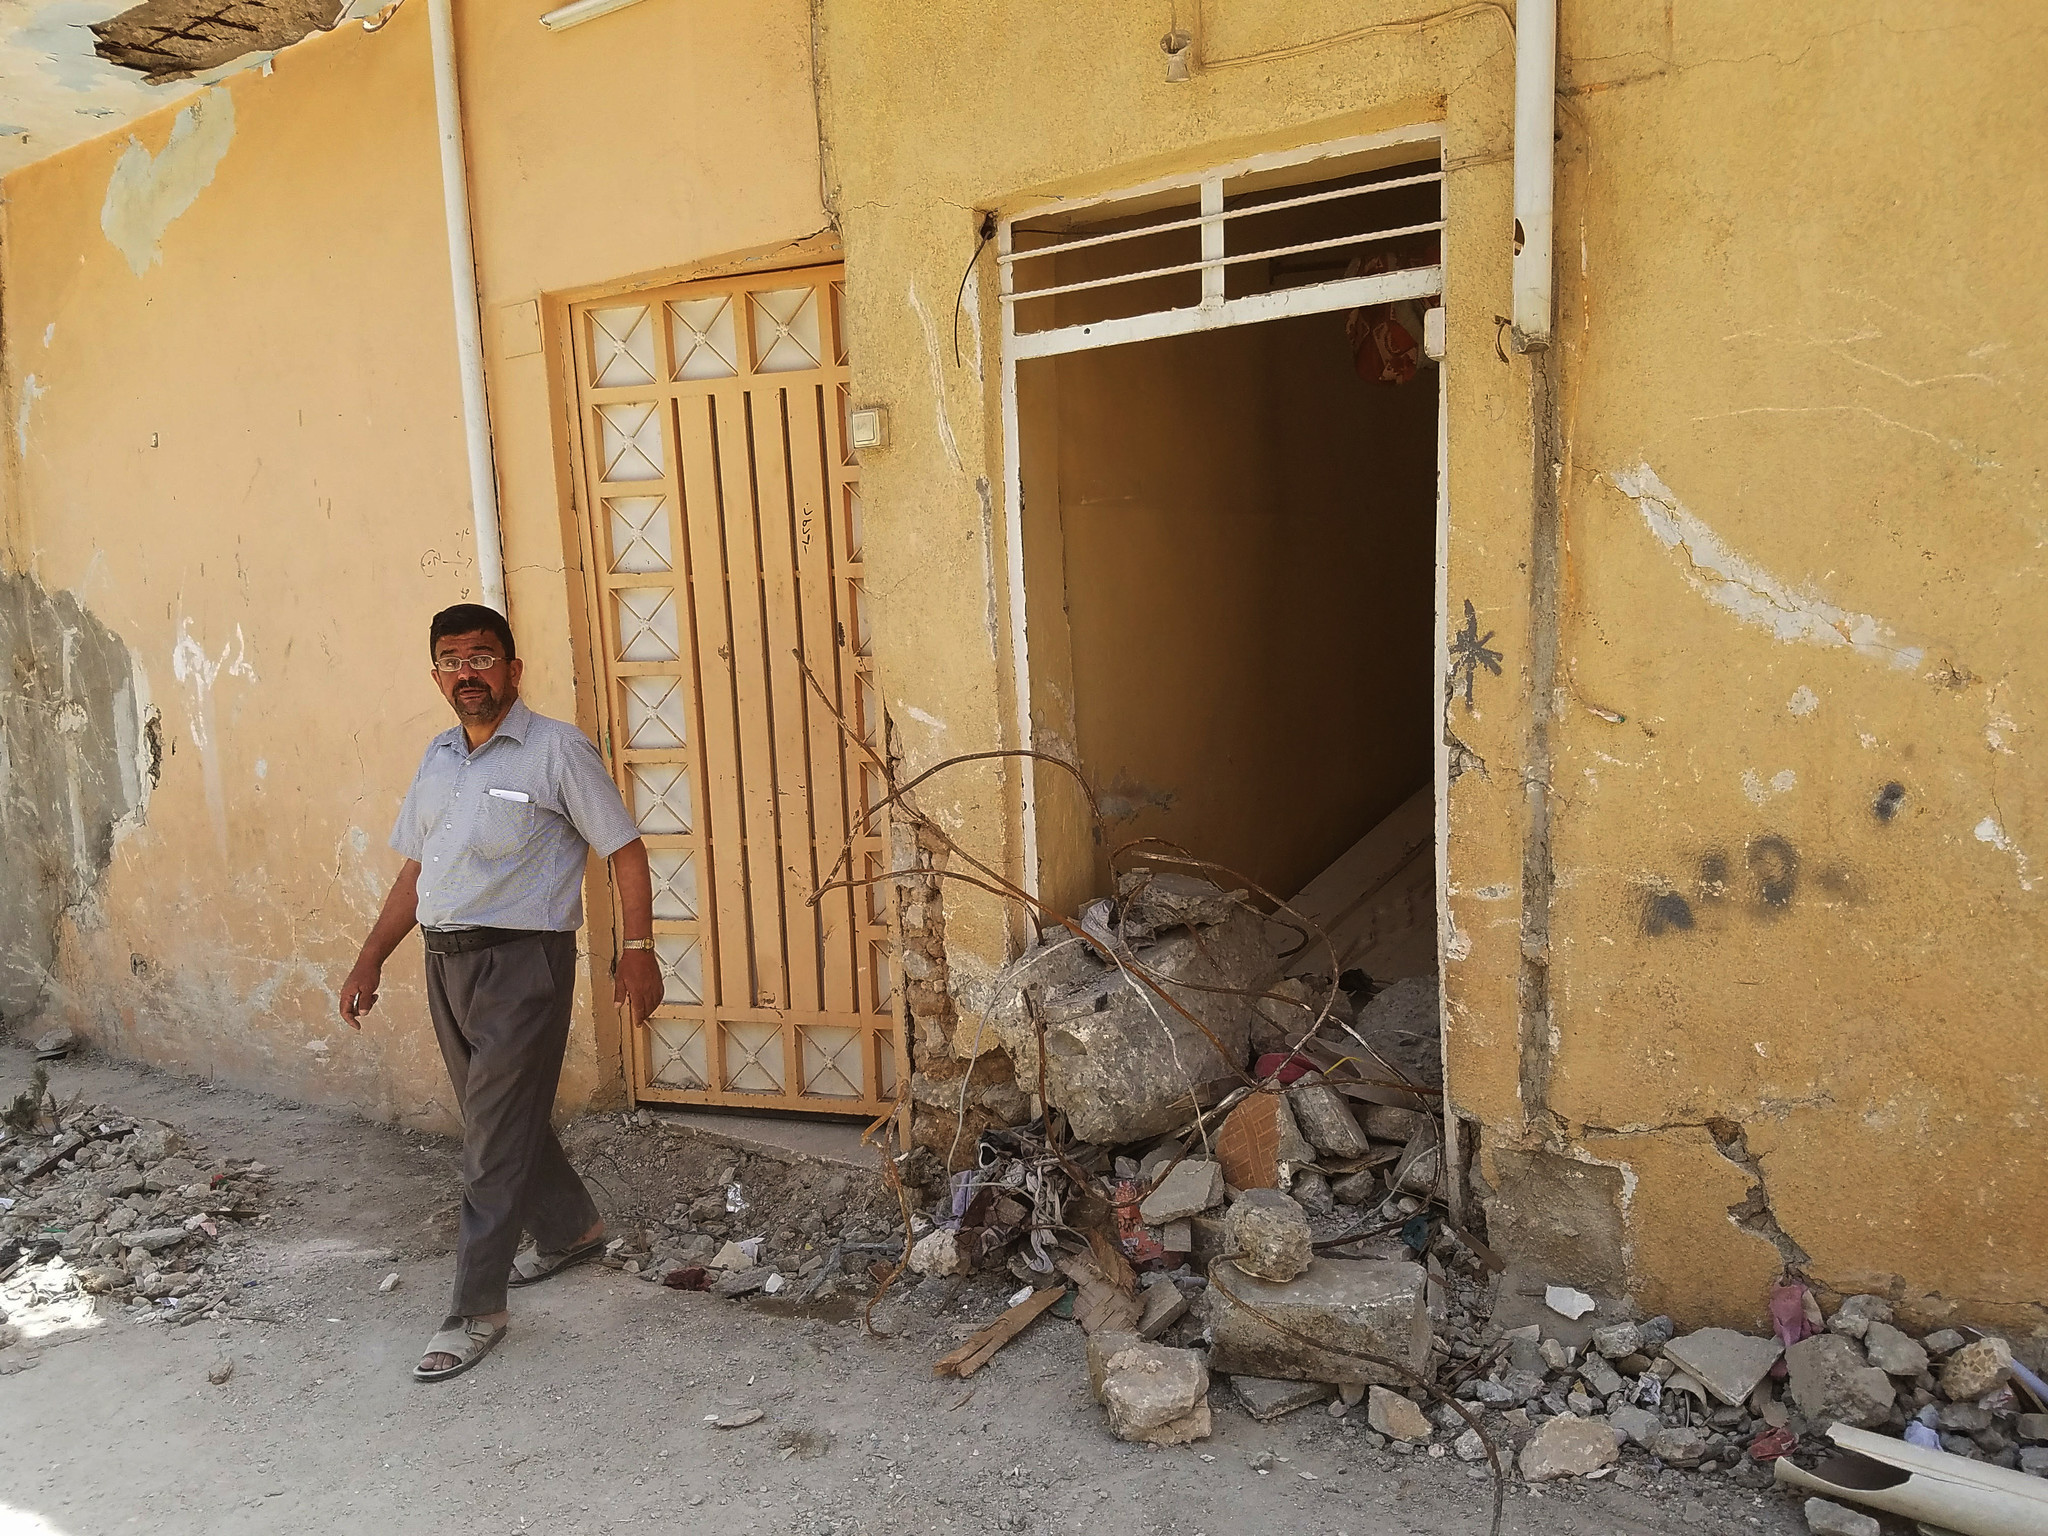 Mohamed Fadil, 38, said he was forced to bury his wife, cousin and cousin's wife in his yard after they were killed in an airstrike March 17 in west Mosul's Jadidah neighborhood.